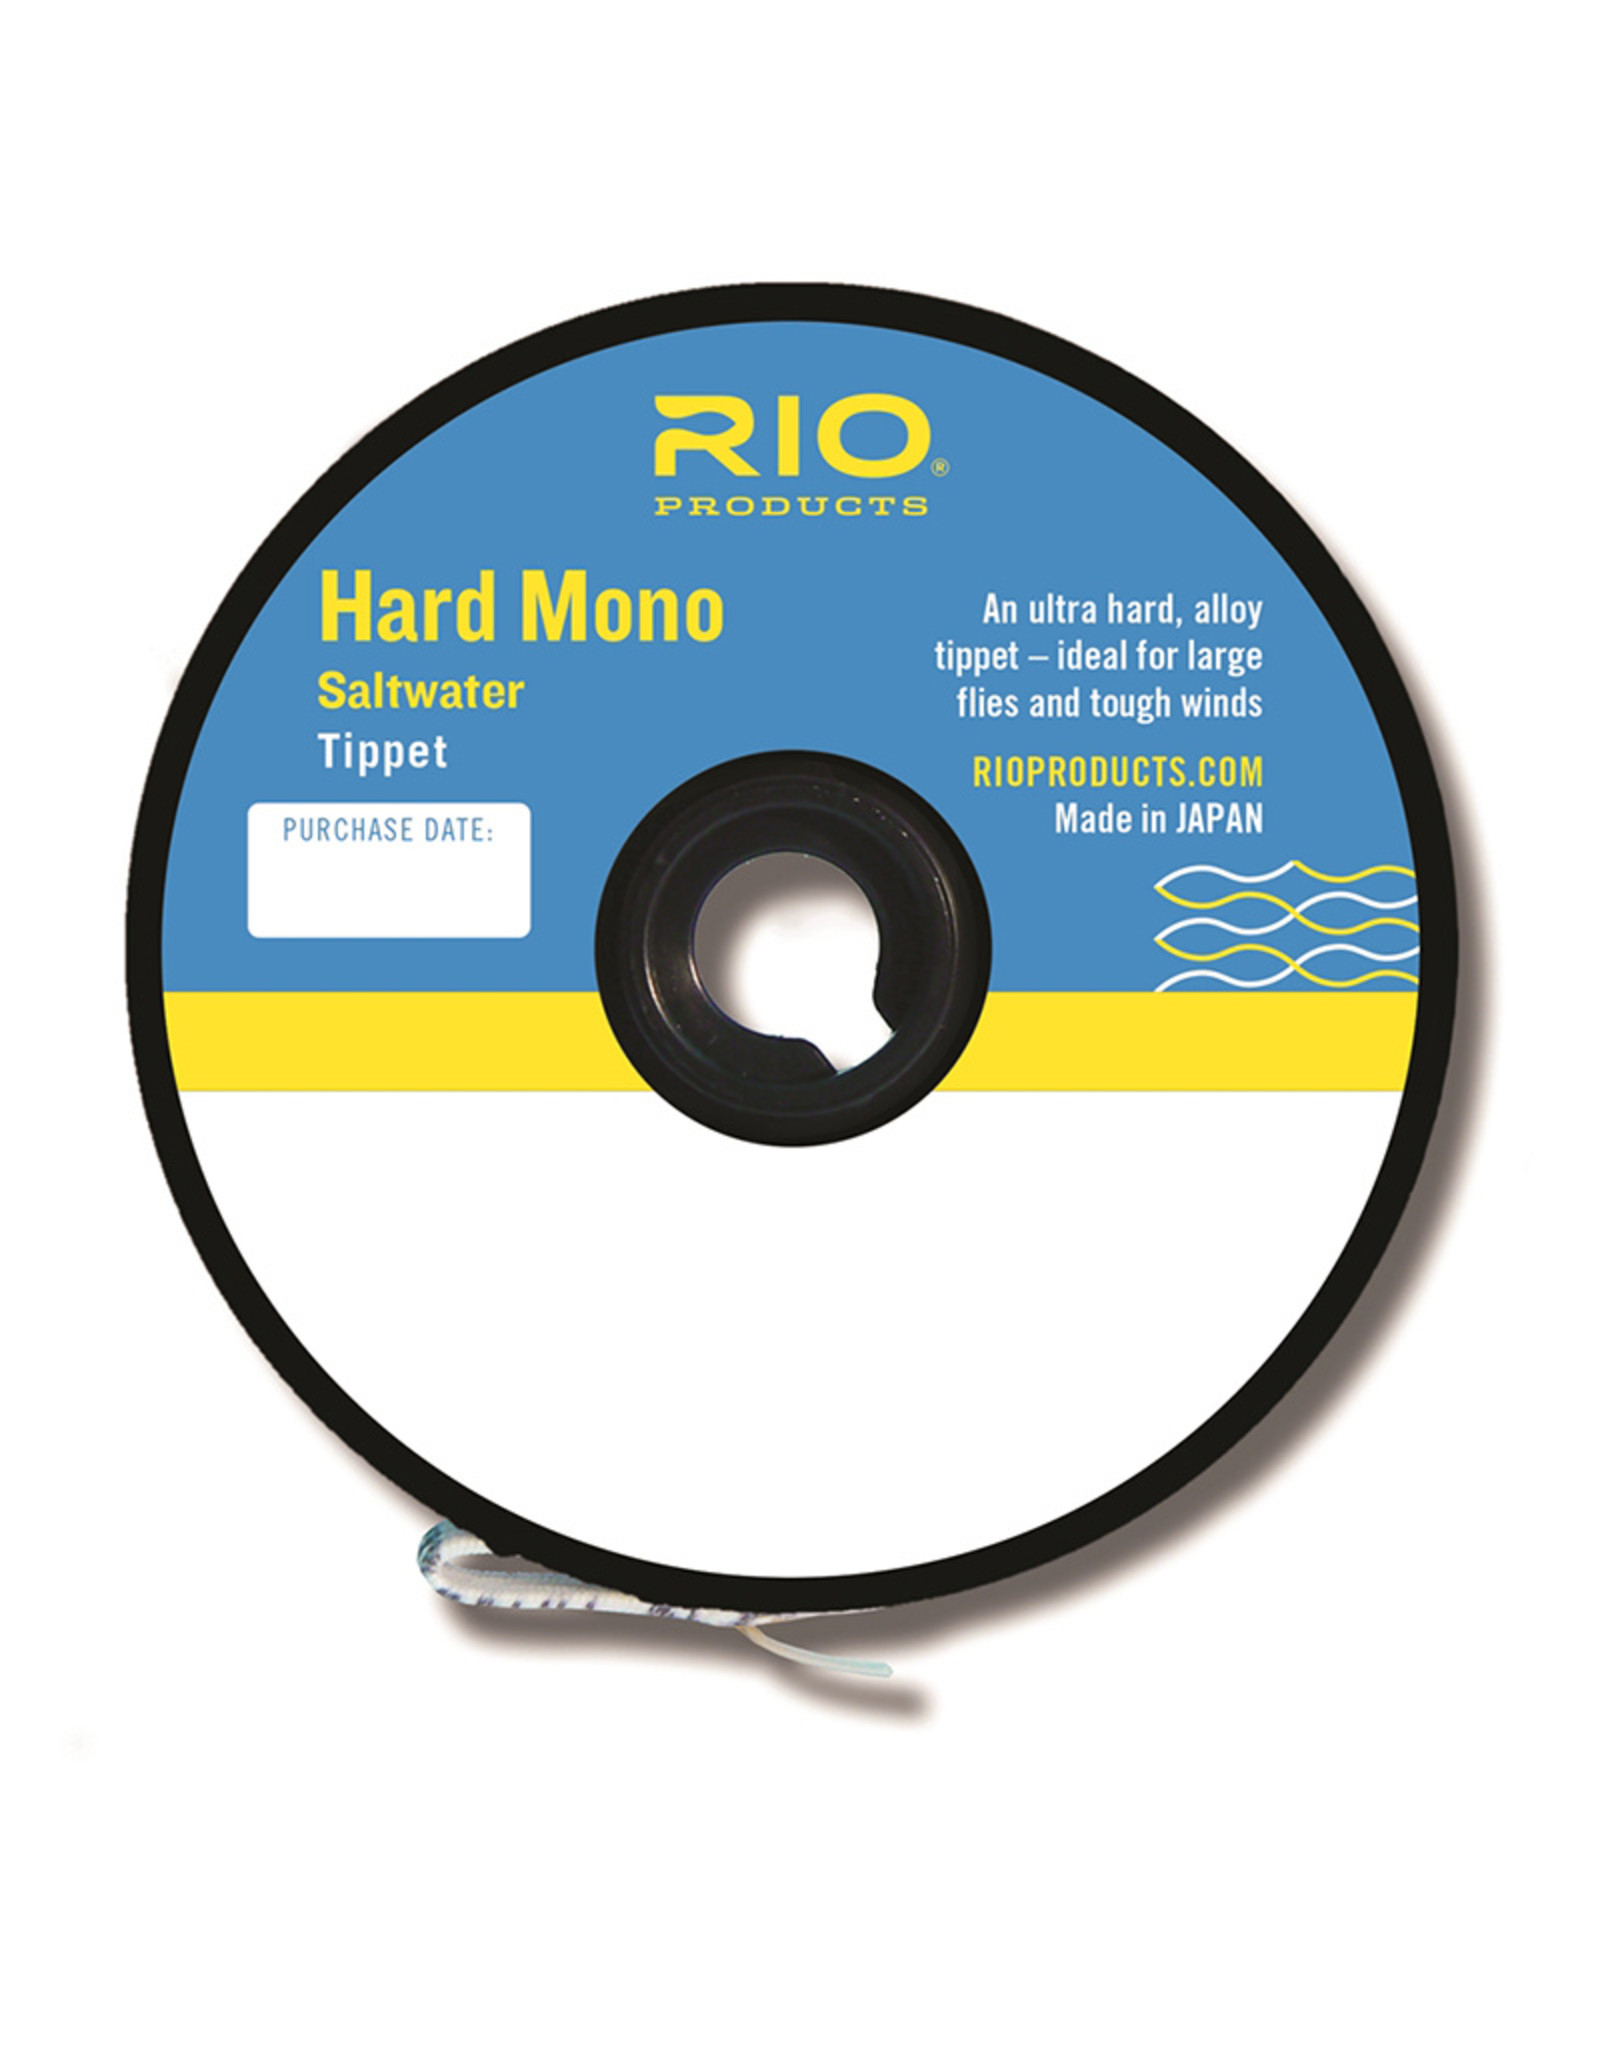 RIO Products Hard Mono Saltwater Tippet Guide Spool